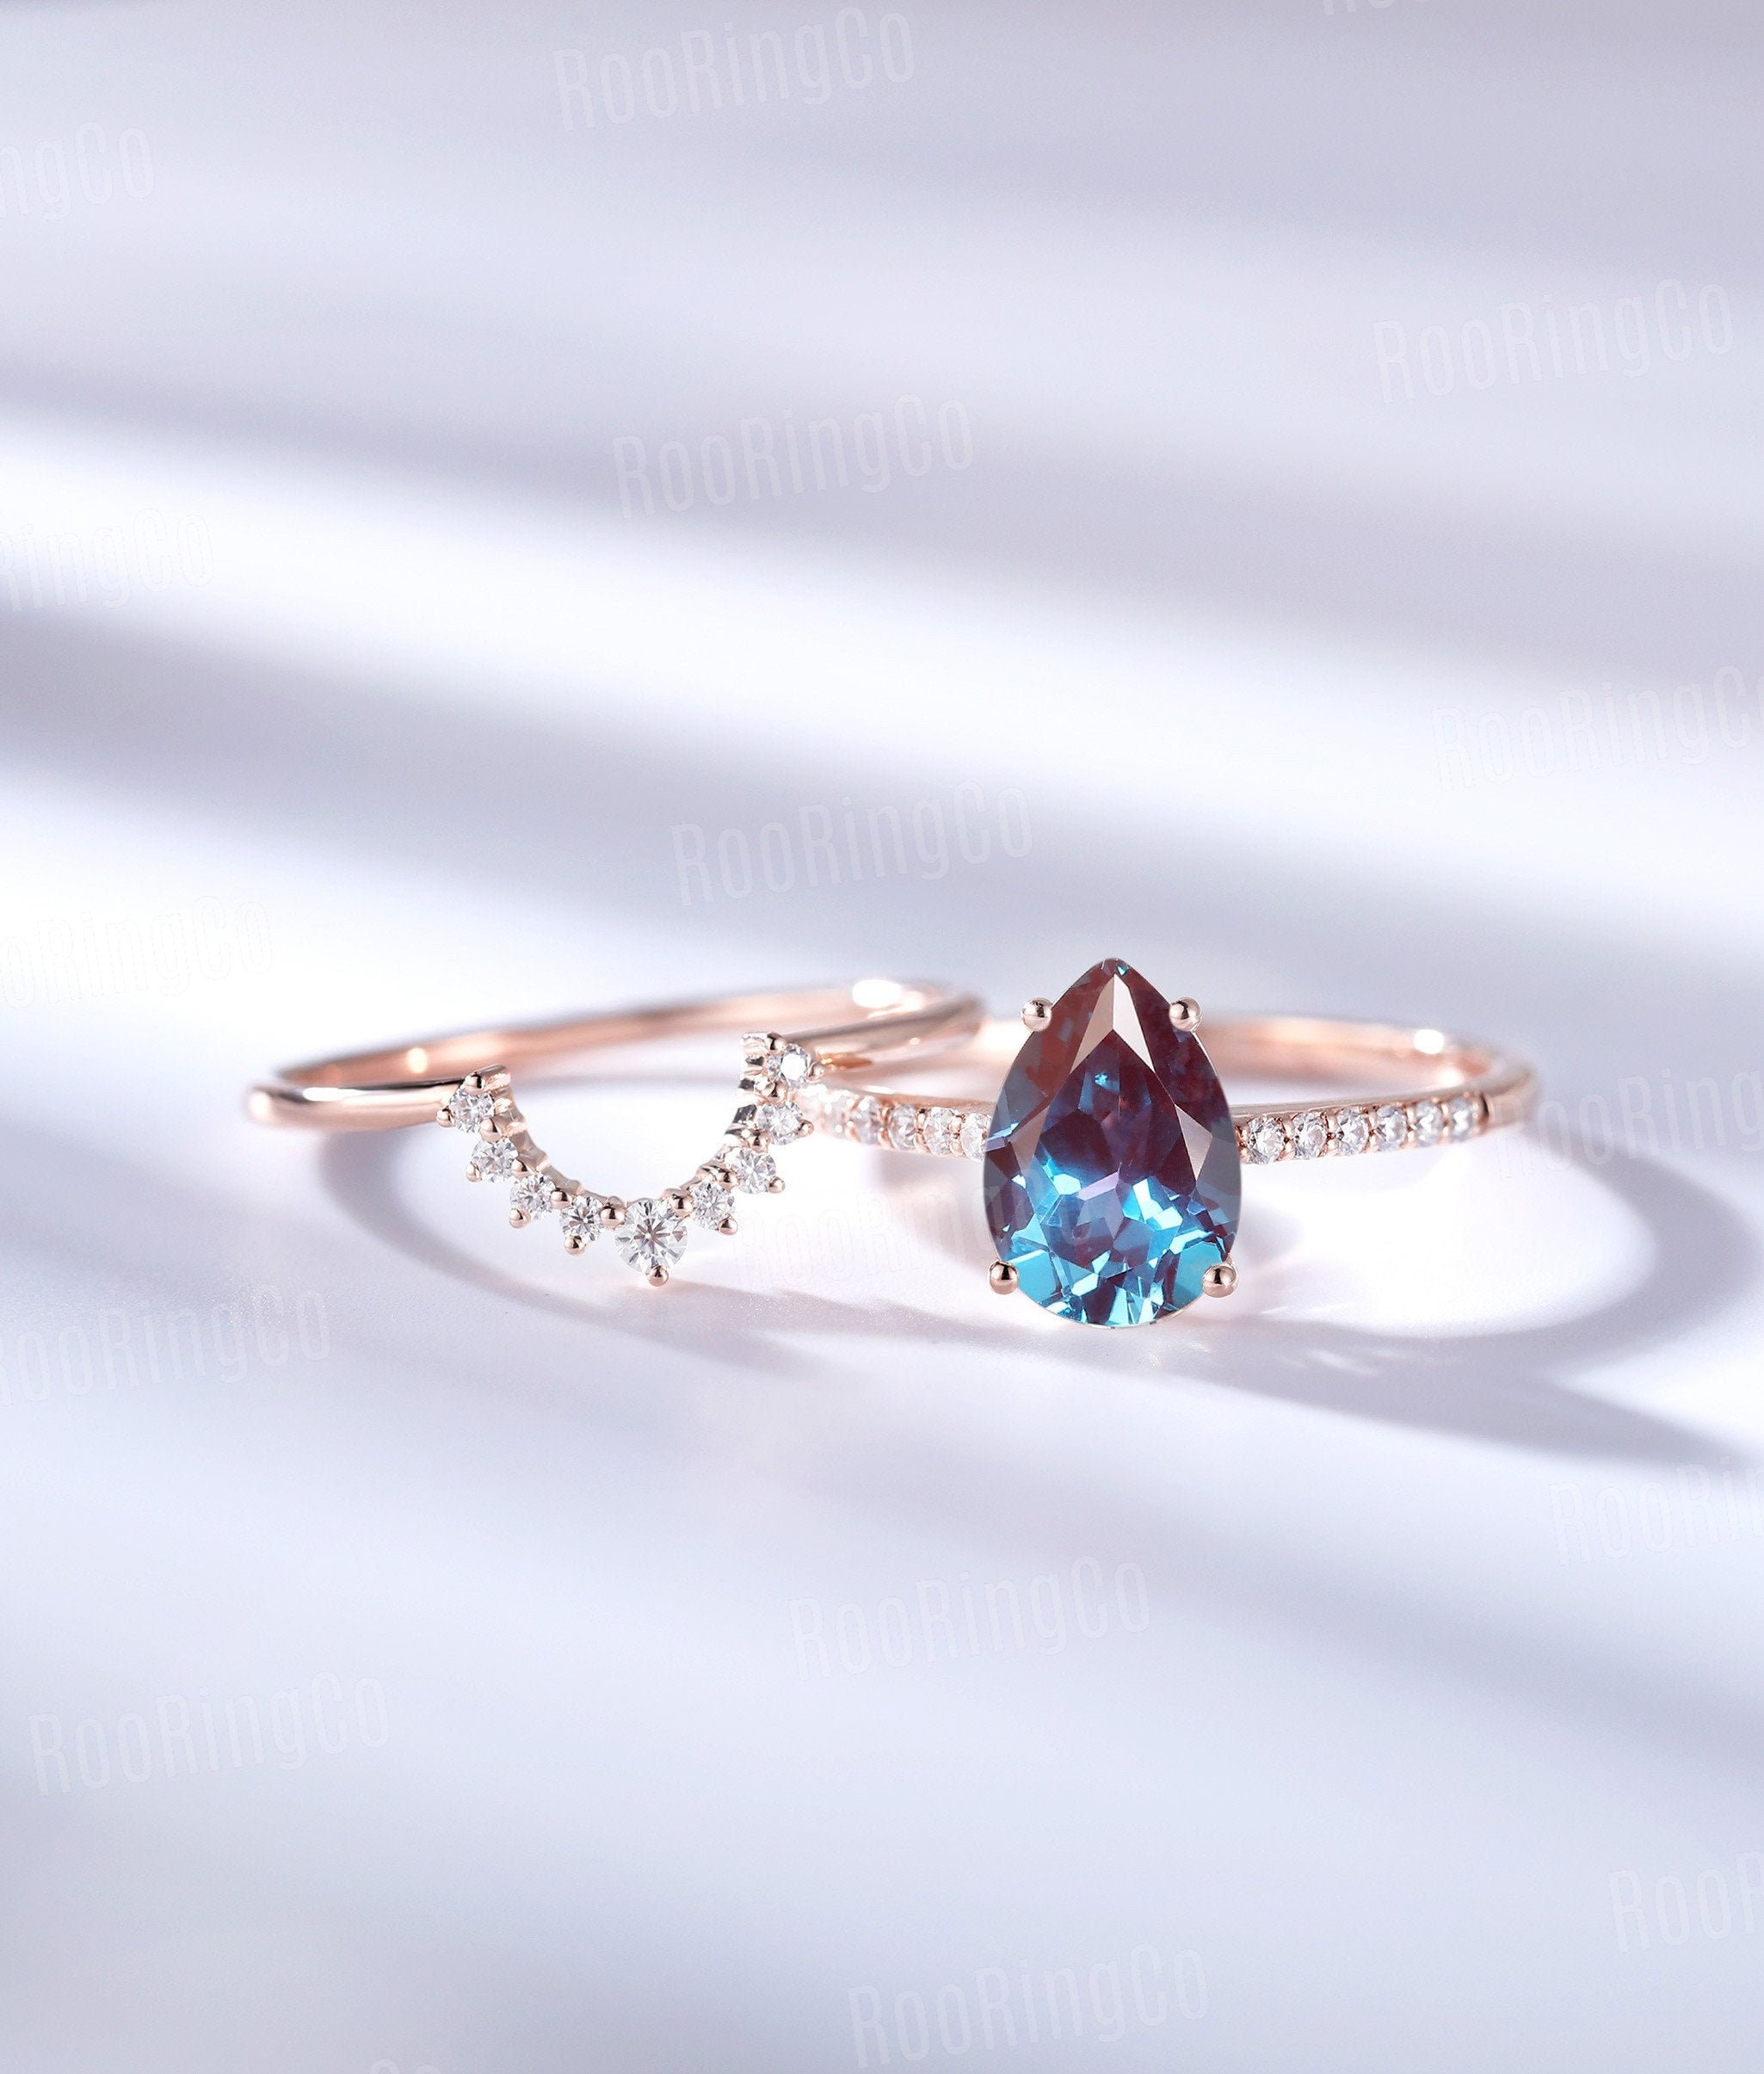 Vintage Alexandrite Engagement Ring Set Pear Shaped Prong Art Deco Rose Gold Curved Wedding Band Unique Anniversary